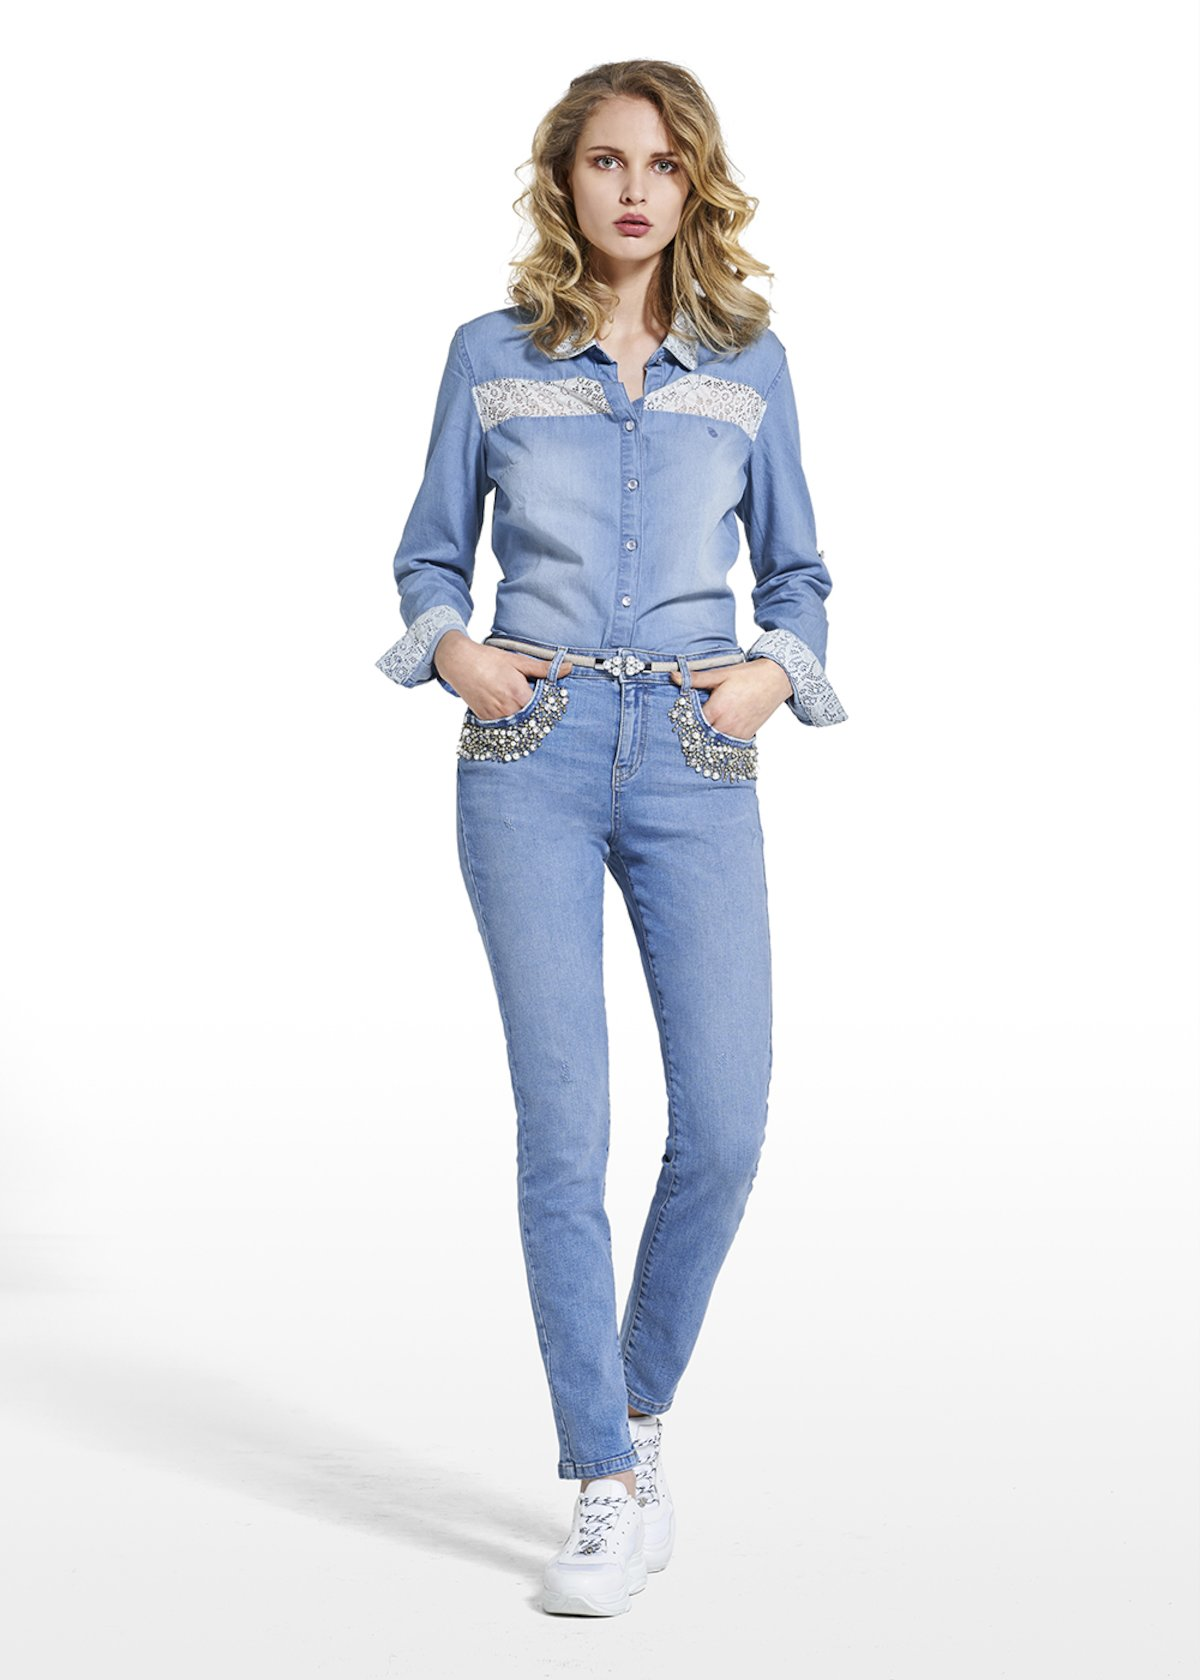 Blouse Caril in denim with lace detail